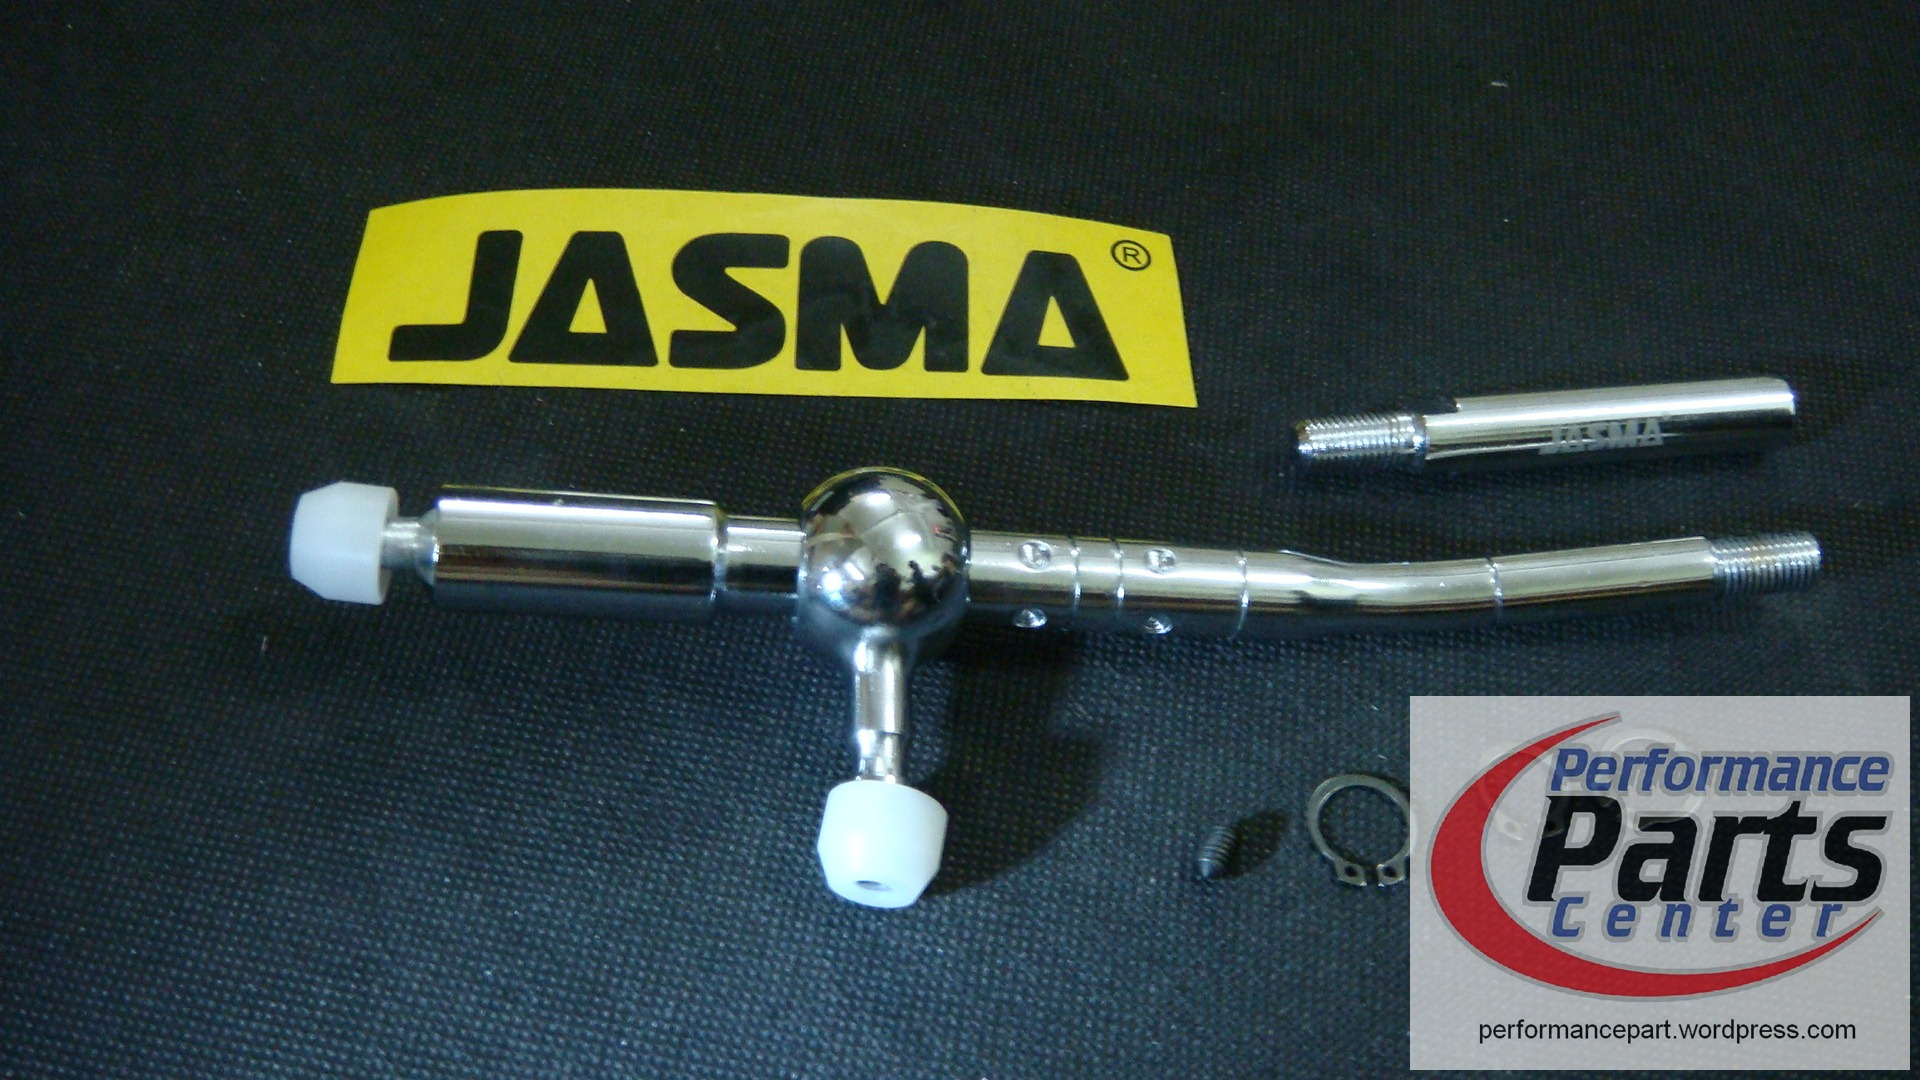 Saga Performance Parts Center Sard Radiator Eg Ek Manual Jasma Short Shifter Waja Gen2 Persona Model 26348